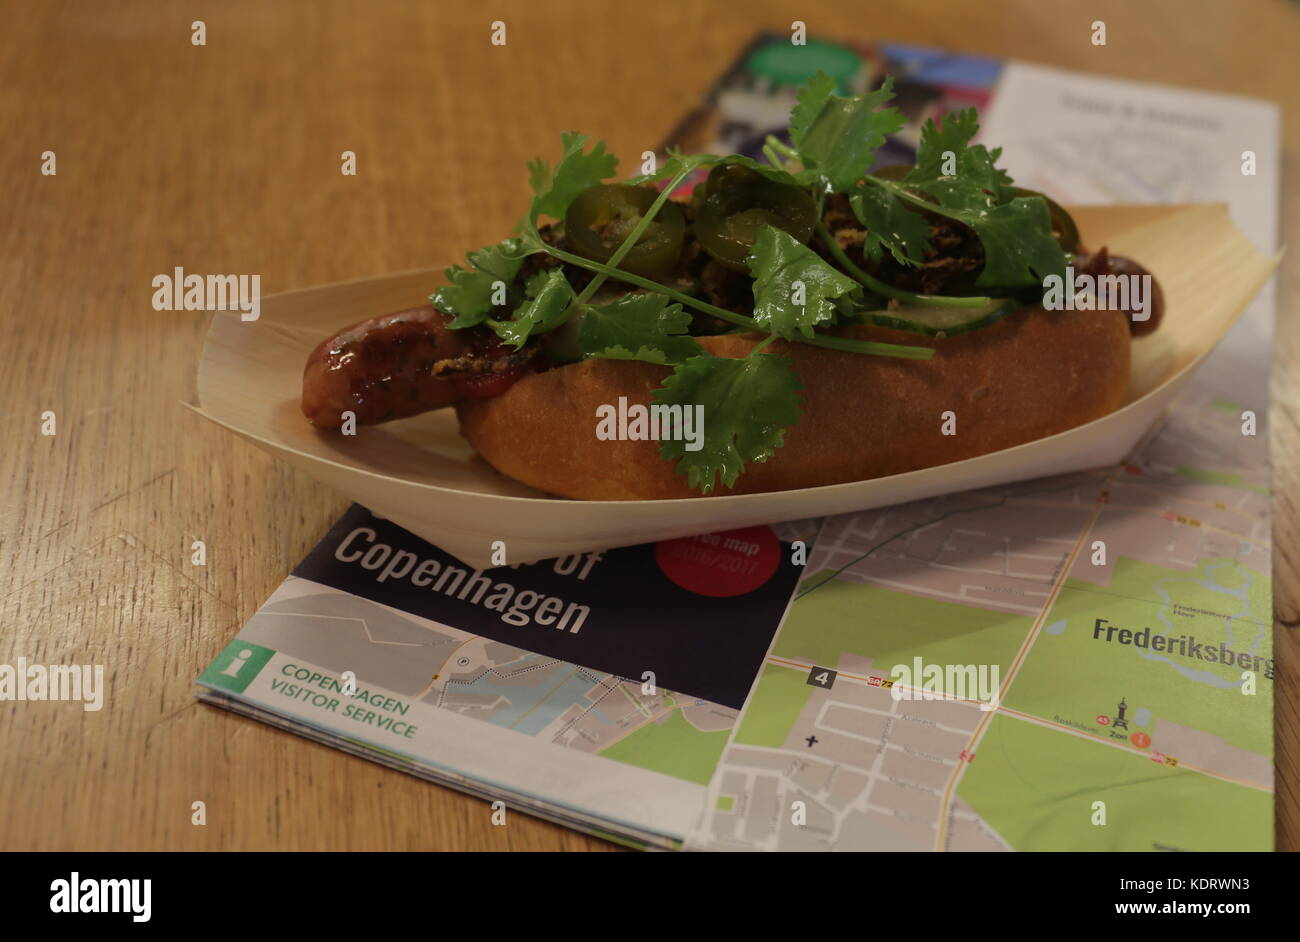 The Famous Danish hot dog with a map underneath, Copenhagen, Denmark - Stock Image